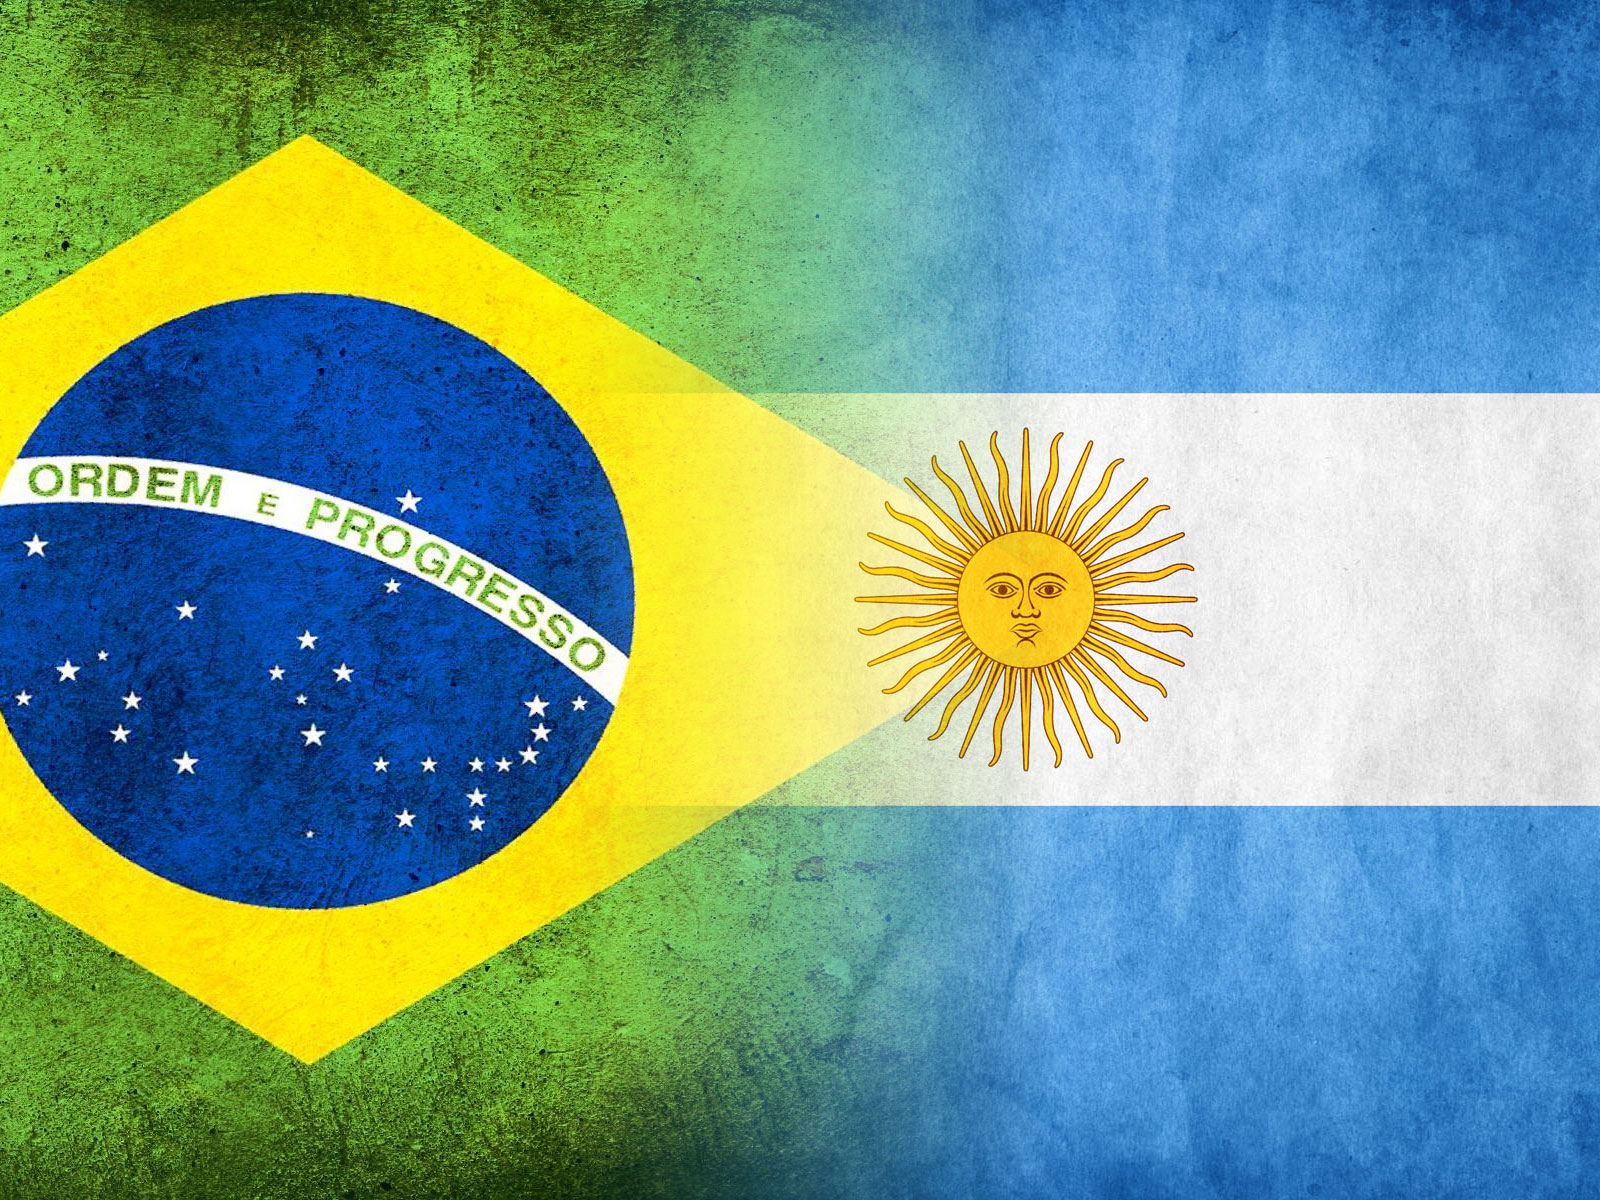 Argentina and Brazil – The Australian Match